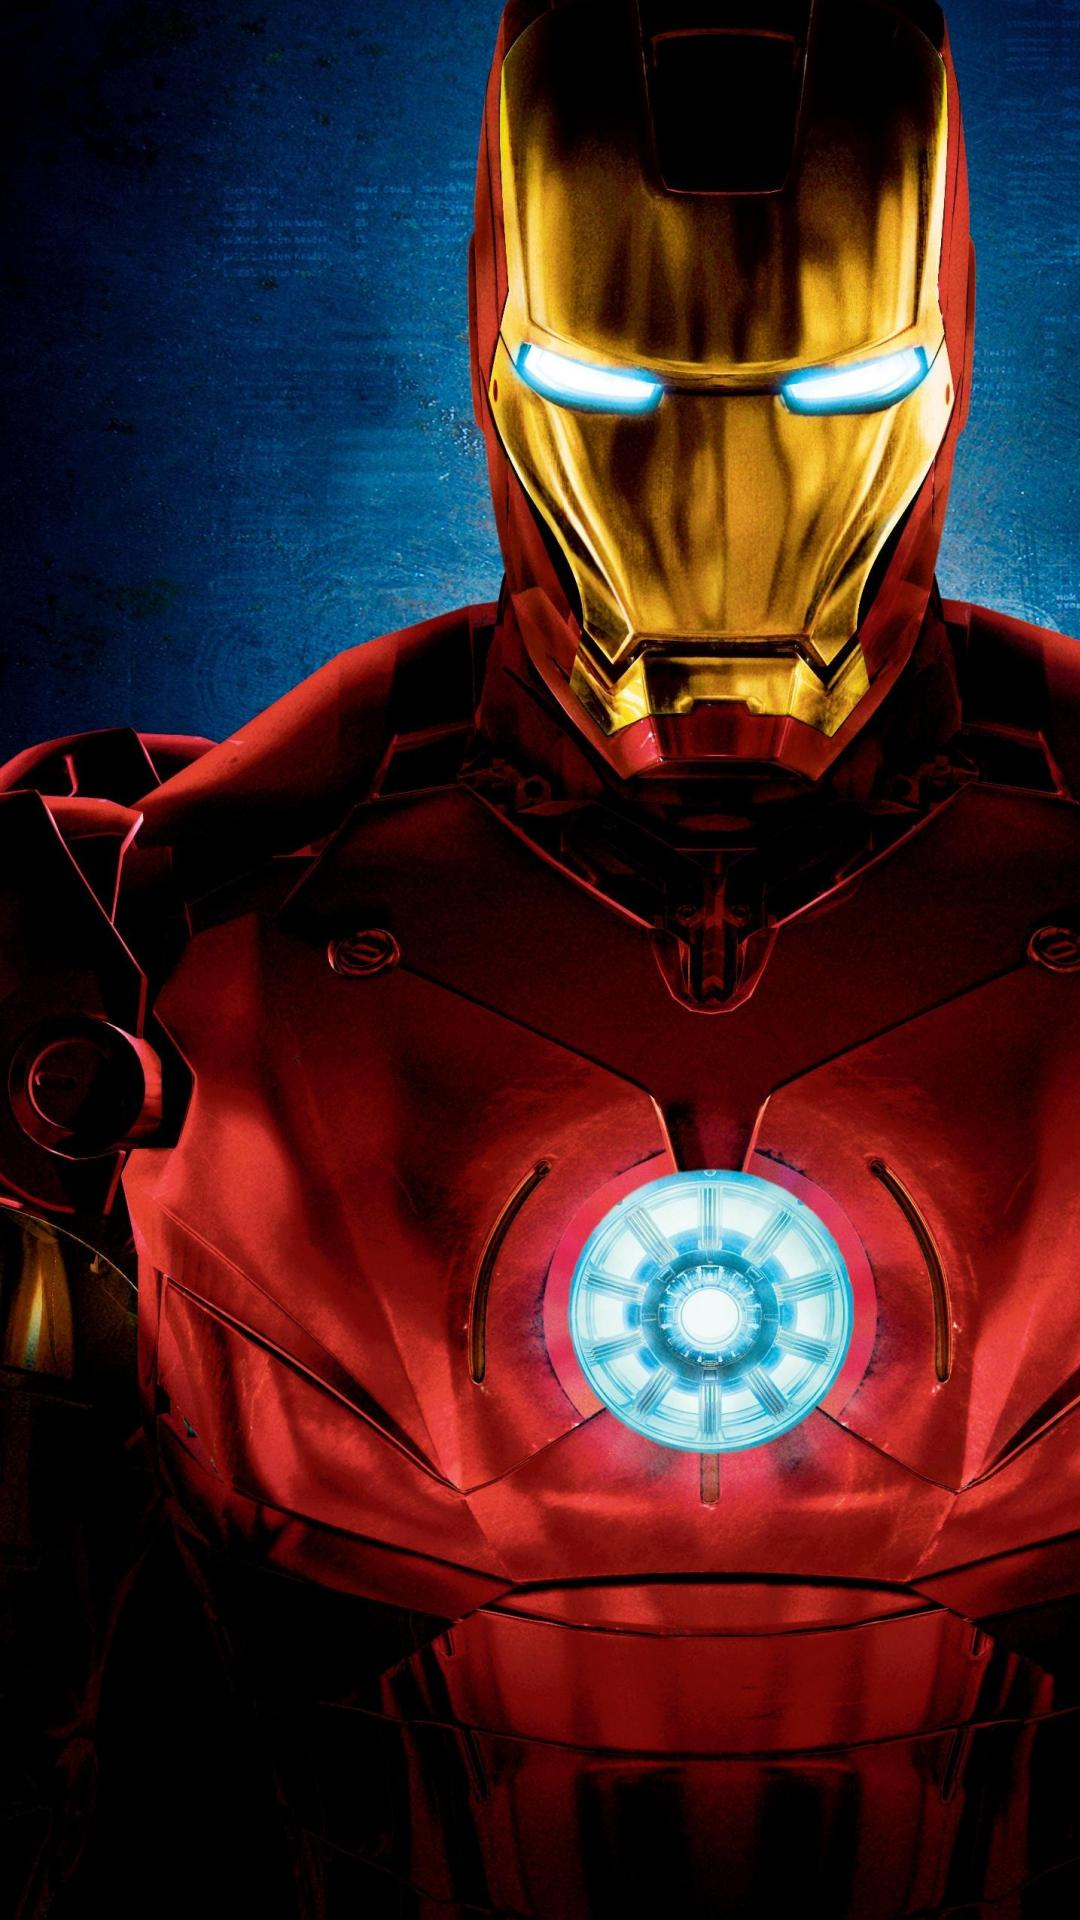 Iron man wallpaper for mobile